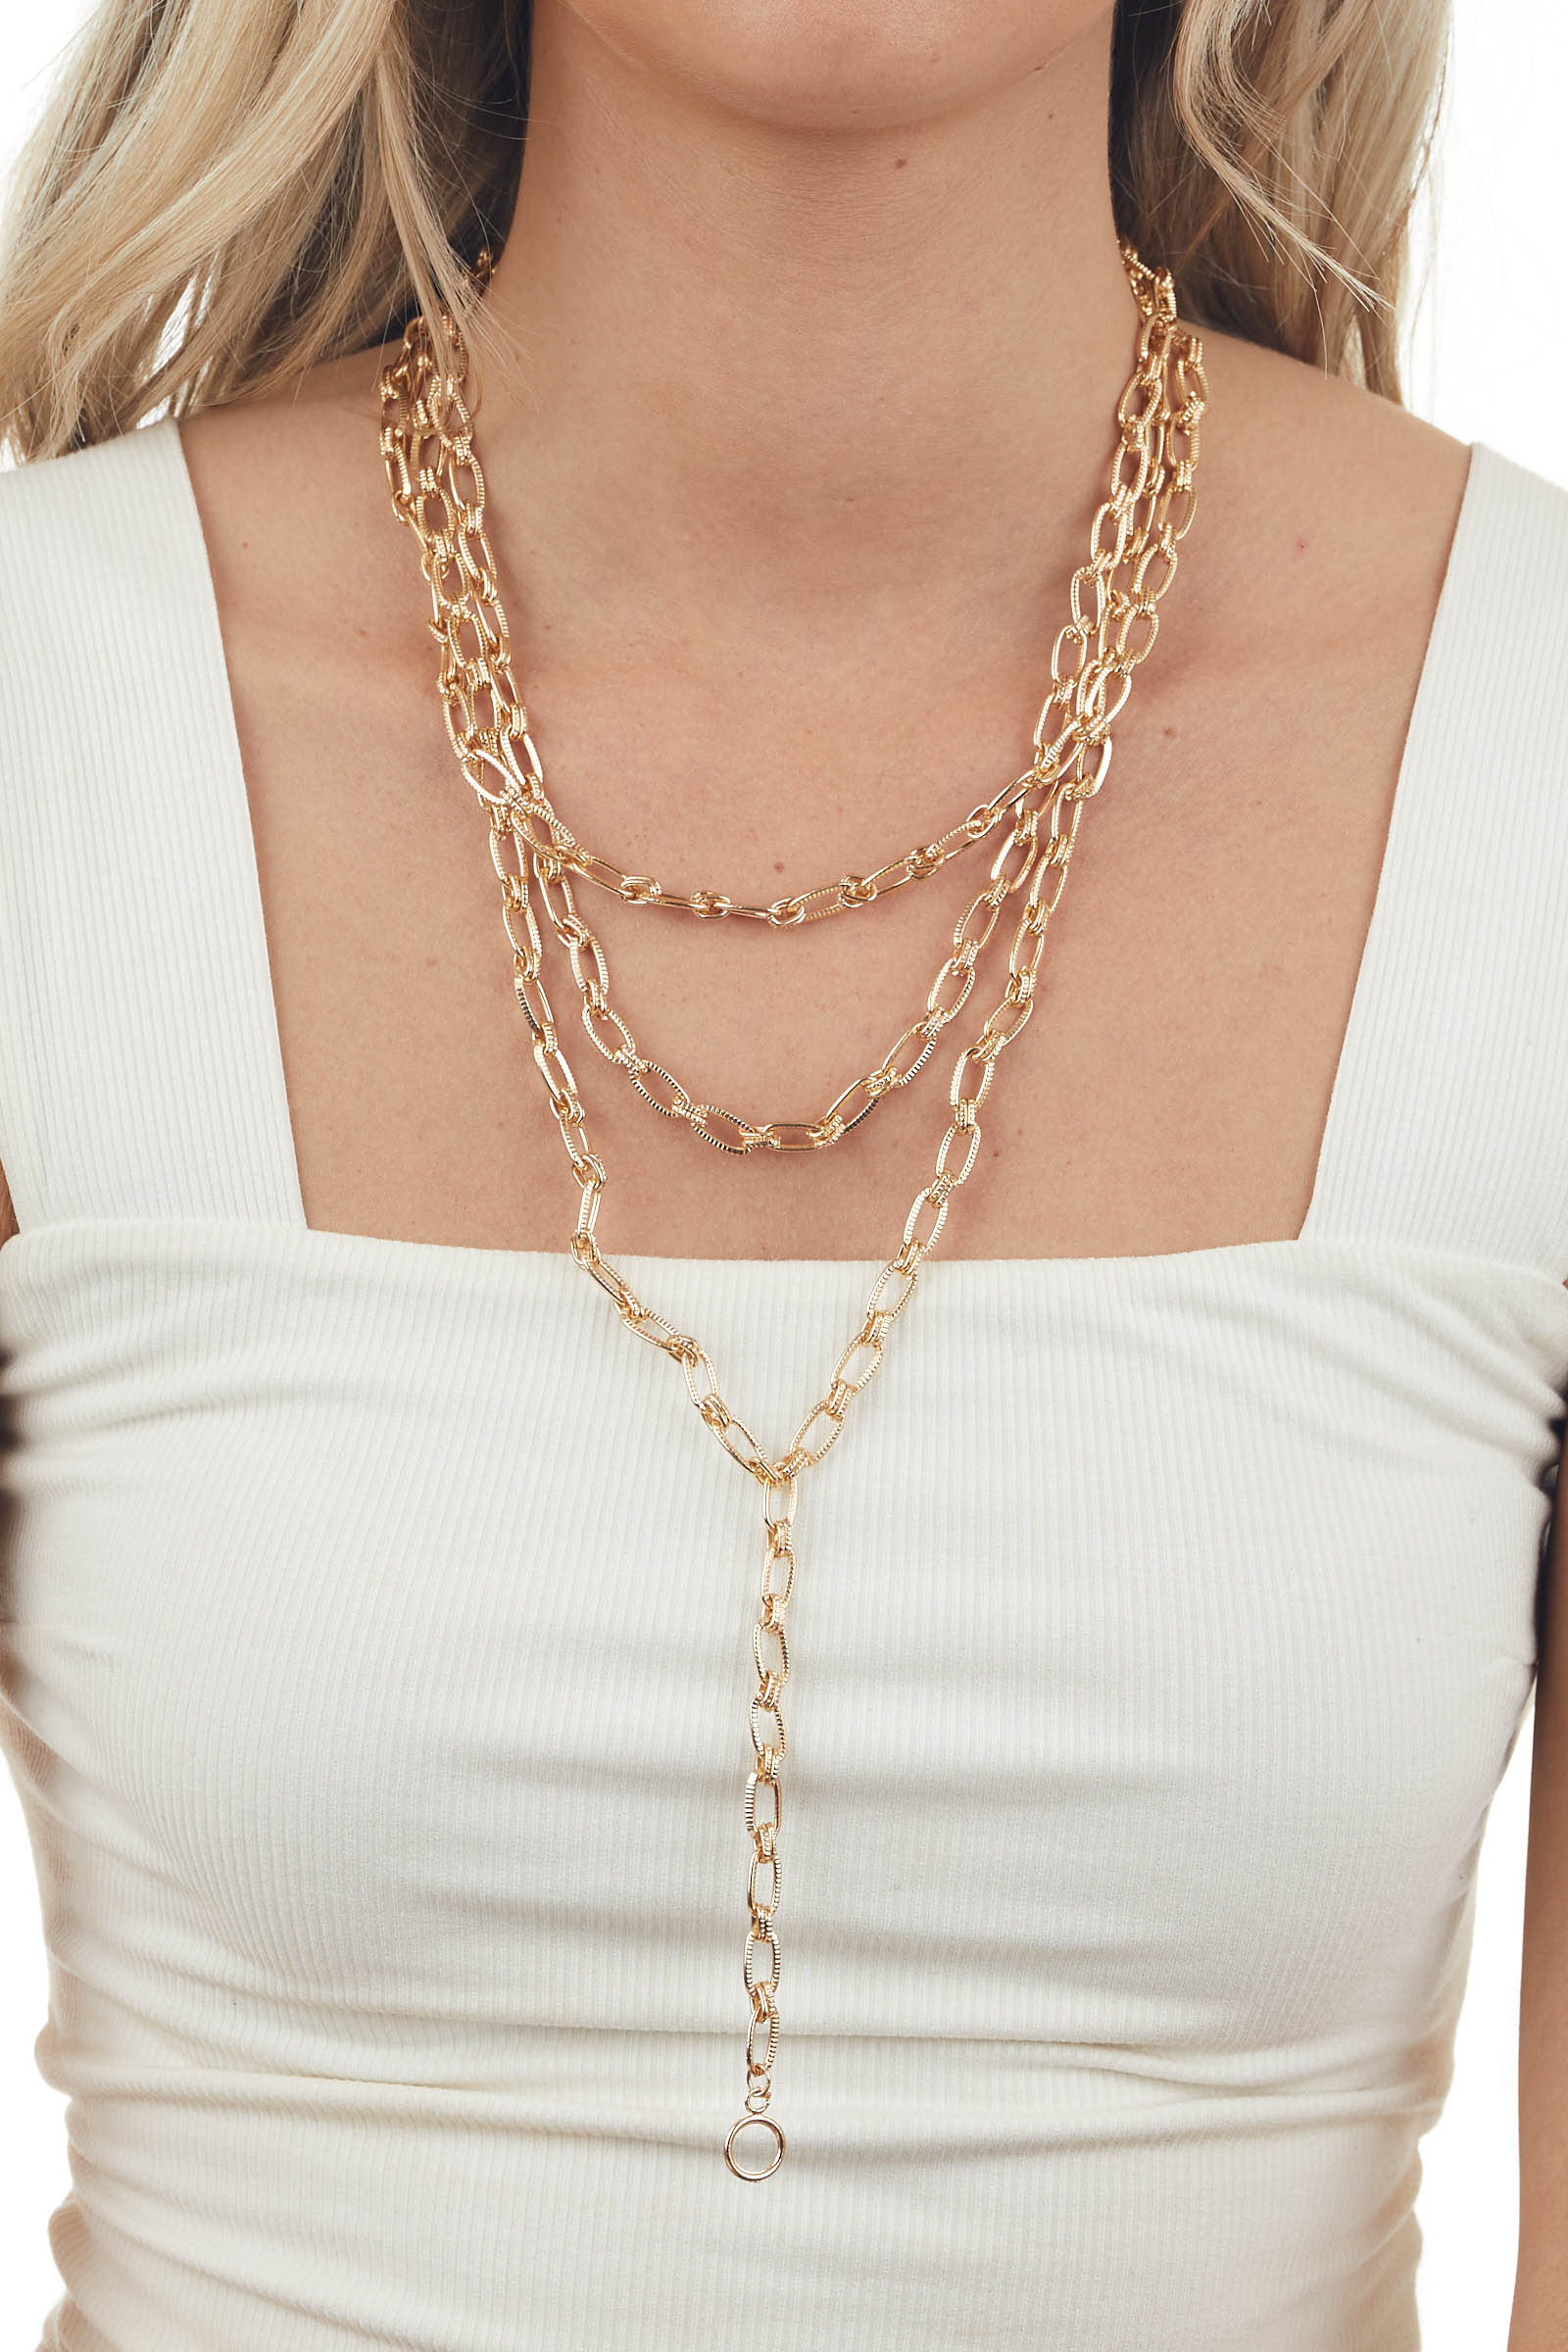 Gold Textured Cable Chain Layered Y Necklace